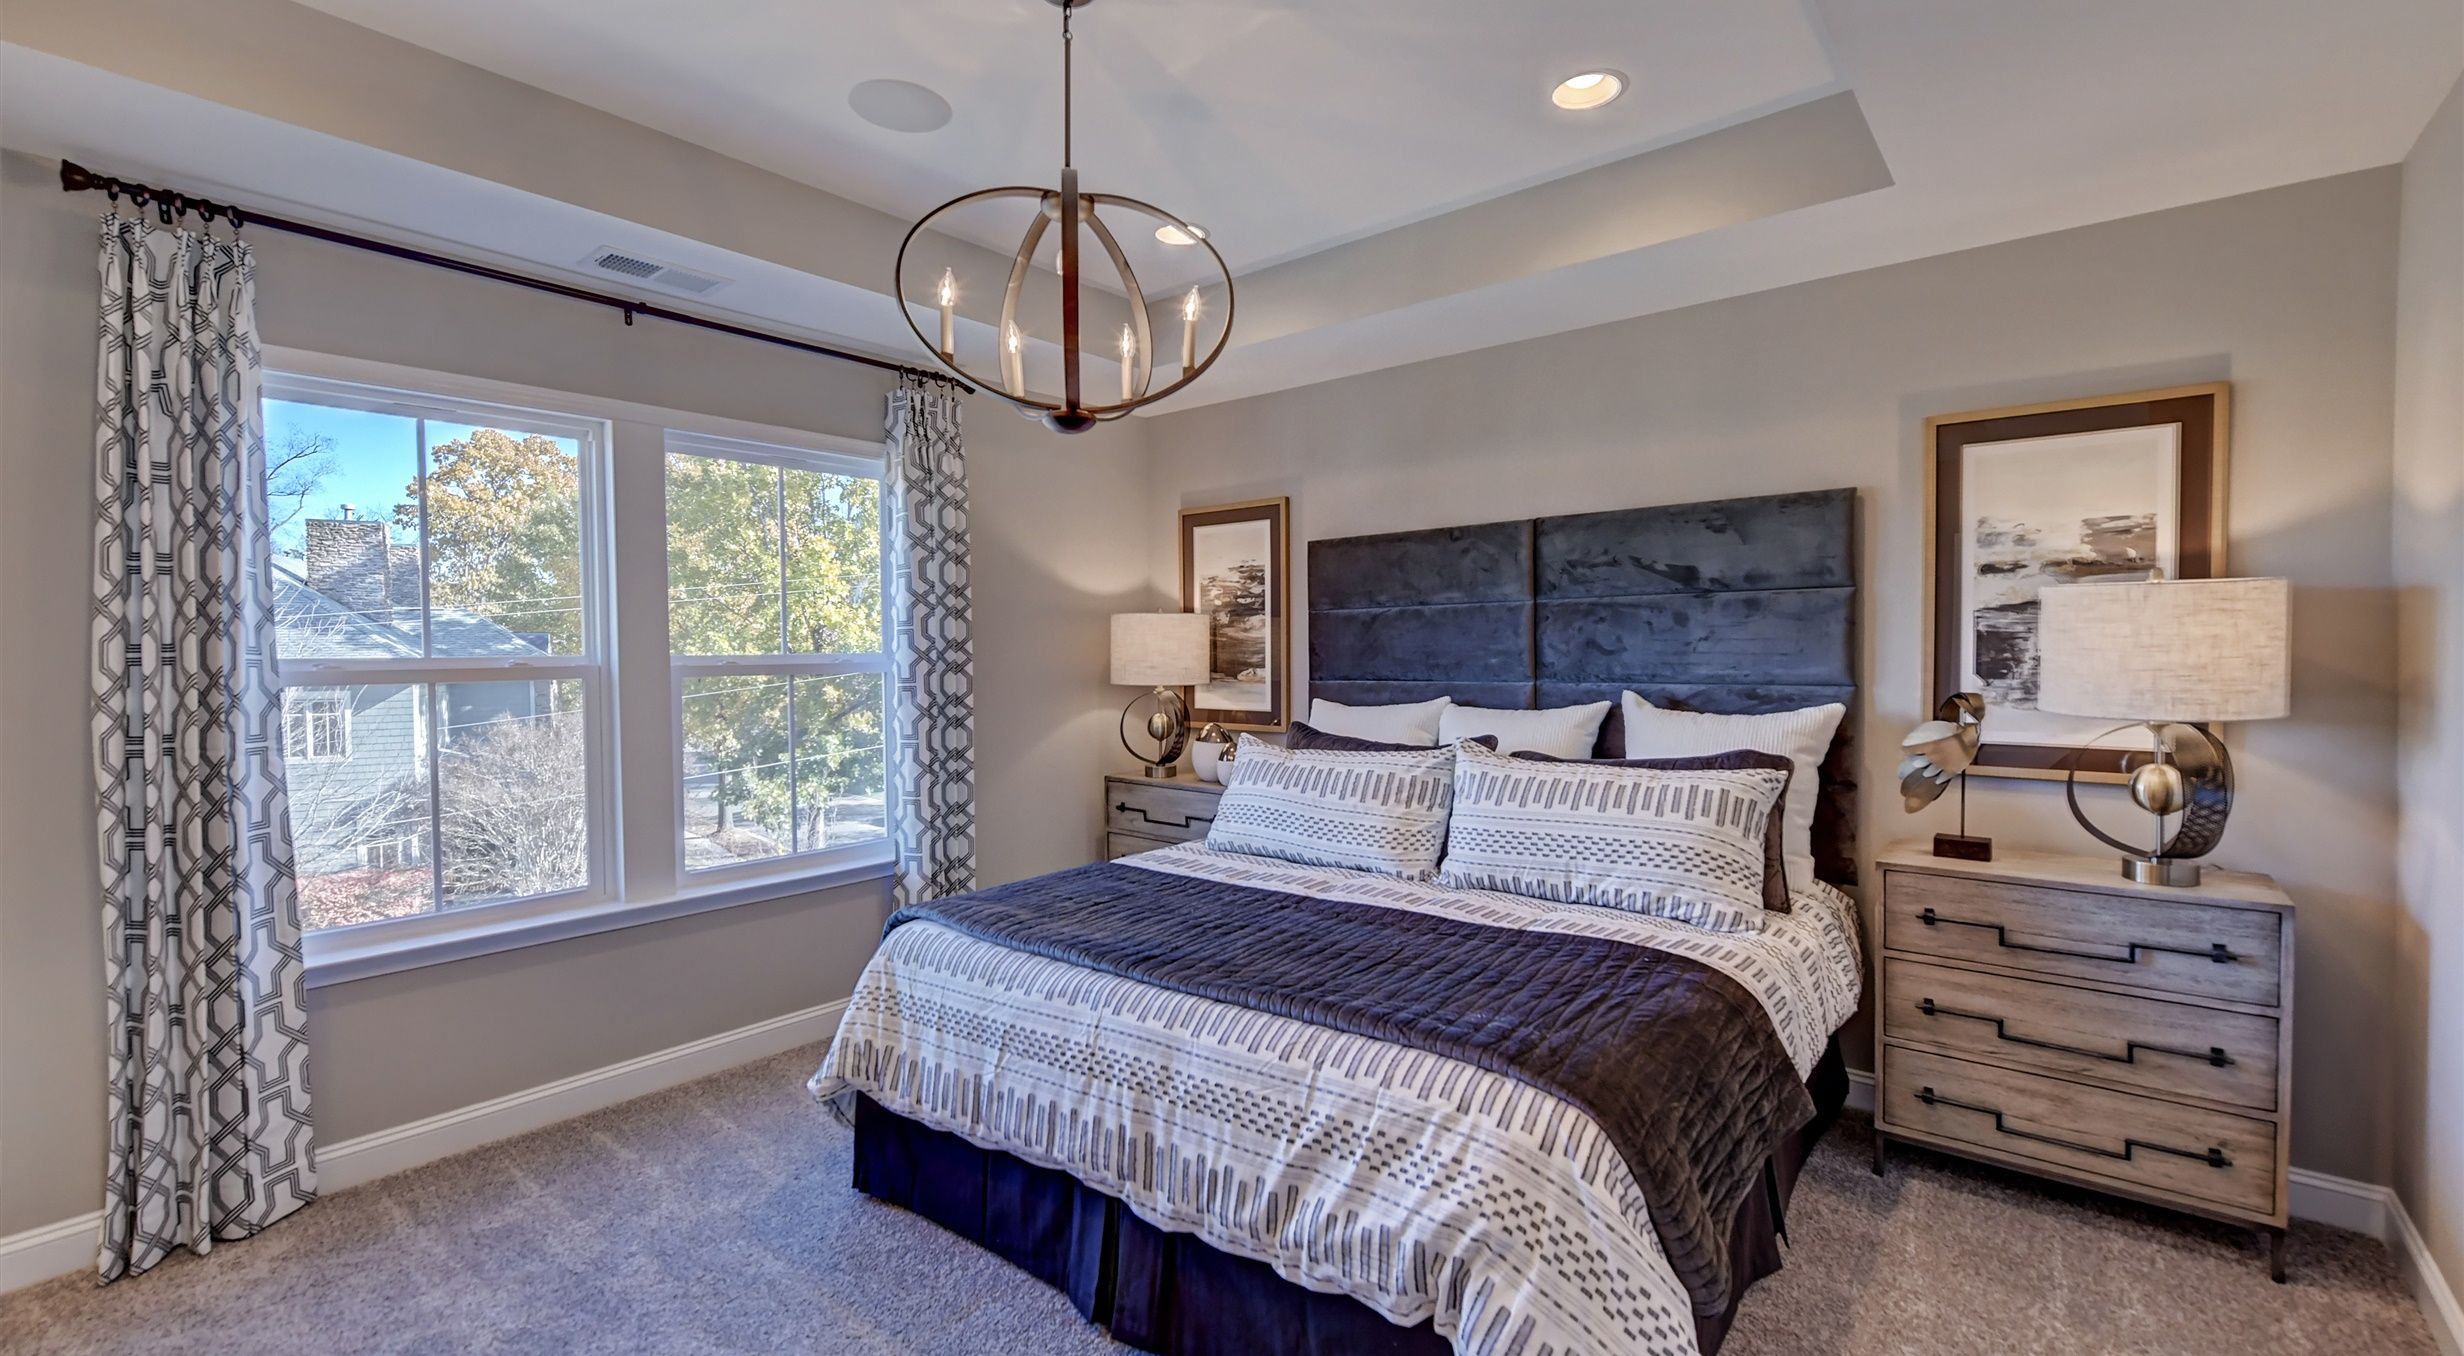 Bedroom featured in the Breckenridge II By Taylor Morrison in Charlotte, NC